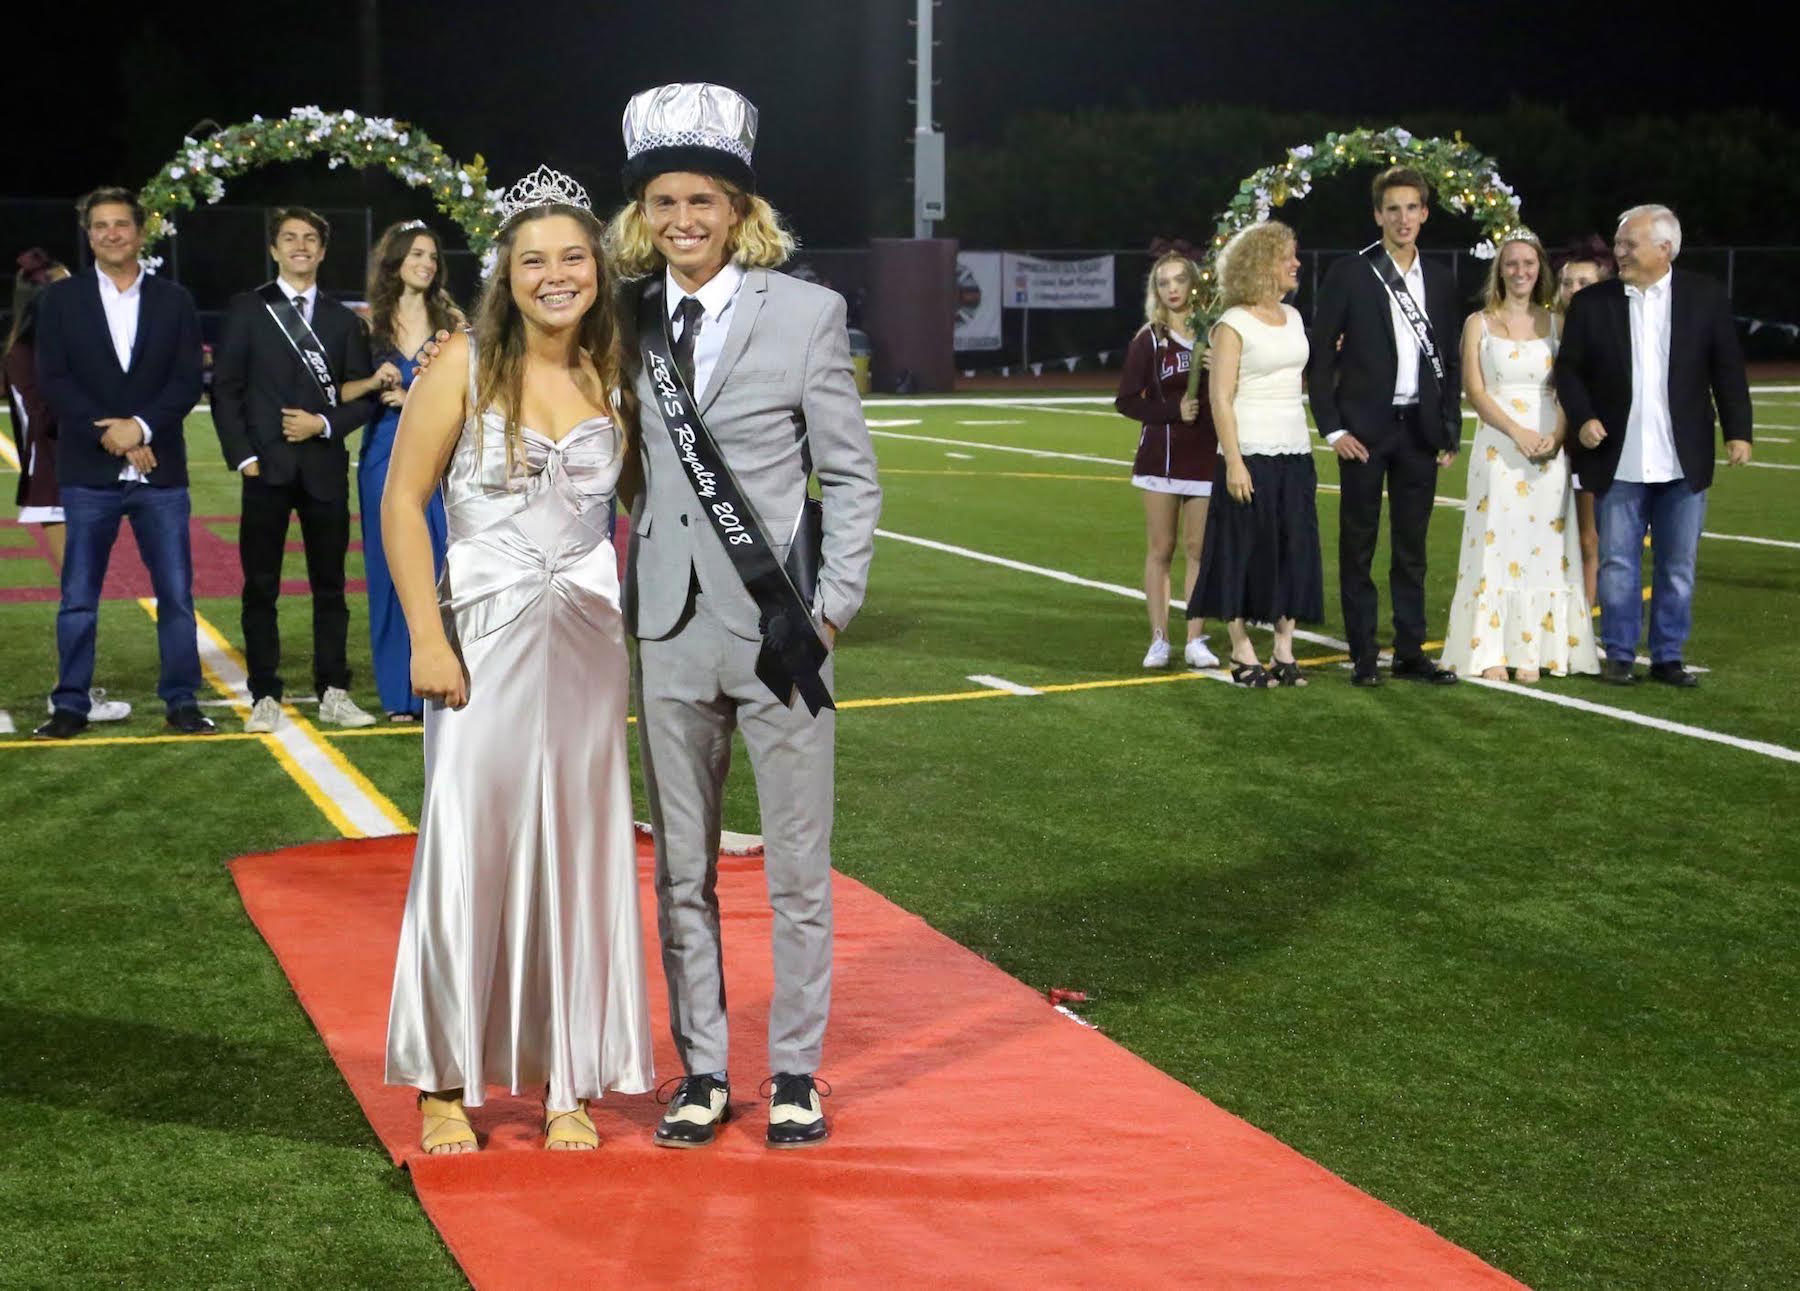 Homecoming 2018 king and queen